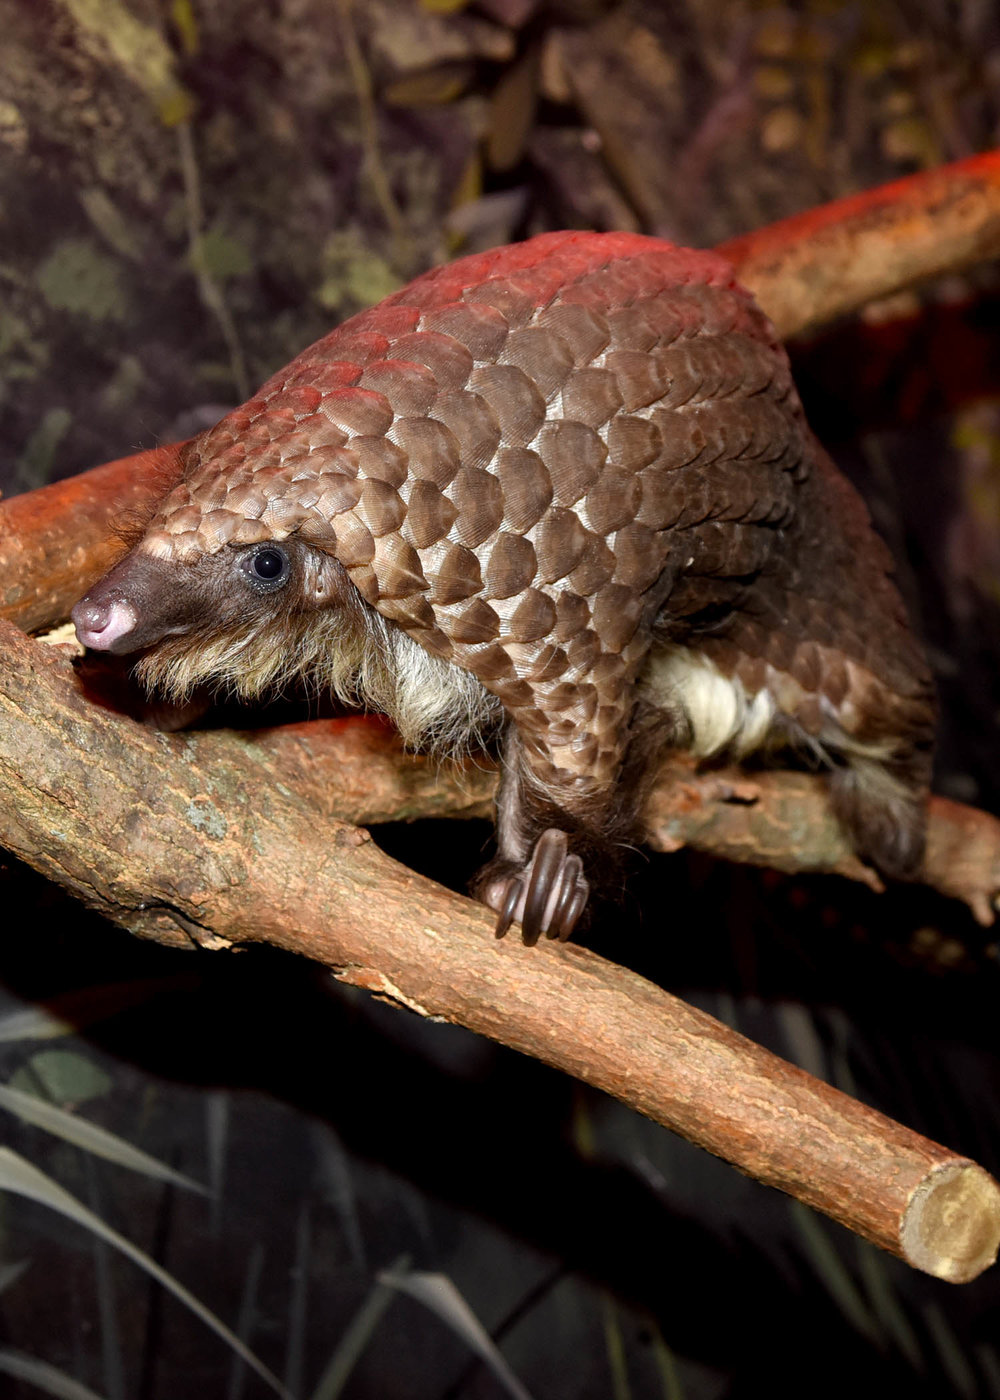 One of the white bellied pangolins at Brookfield Zoo. The scale covered mammal is one of the most heavily trafficked animals in the world (photo courtesy of Chicago Zoological Society/Brookfield Zoo)